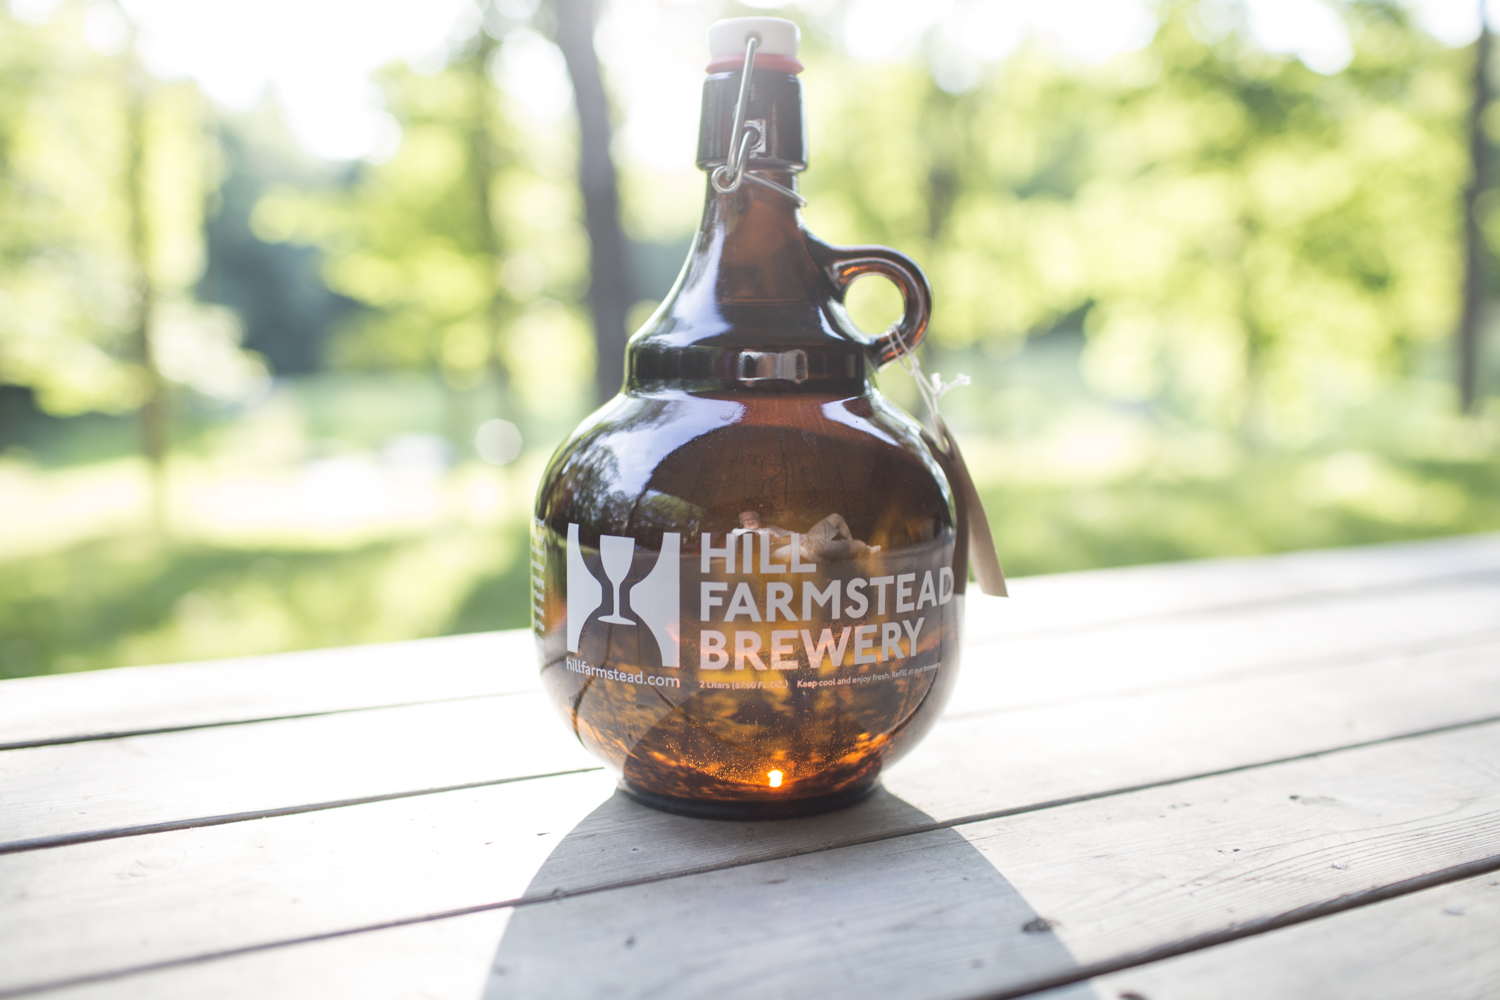 Hill Farmstead Growler